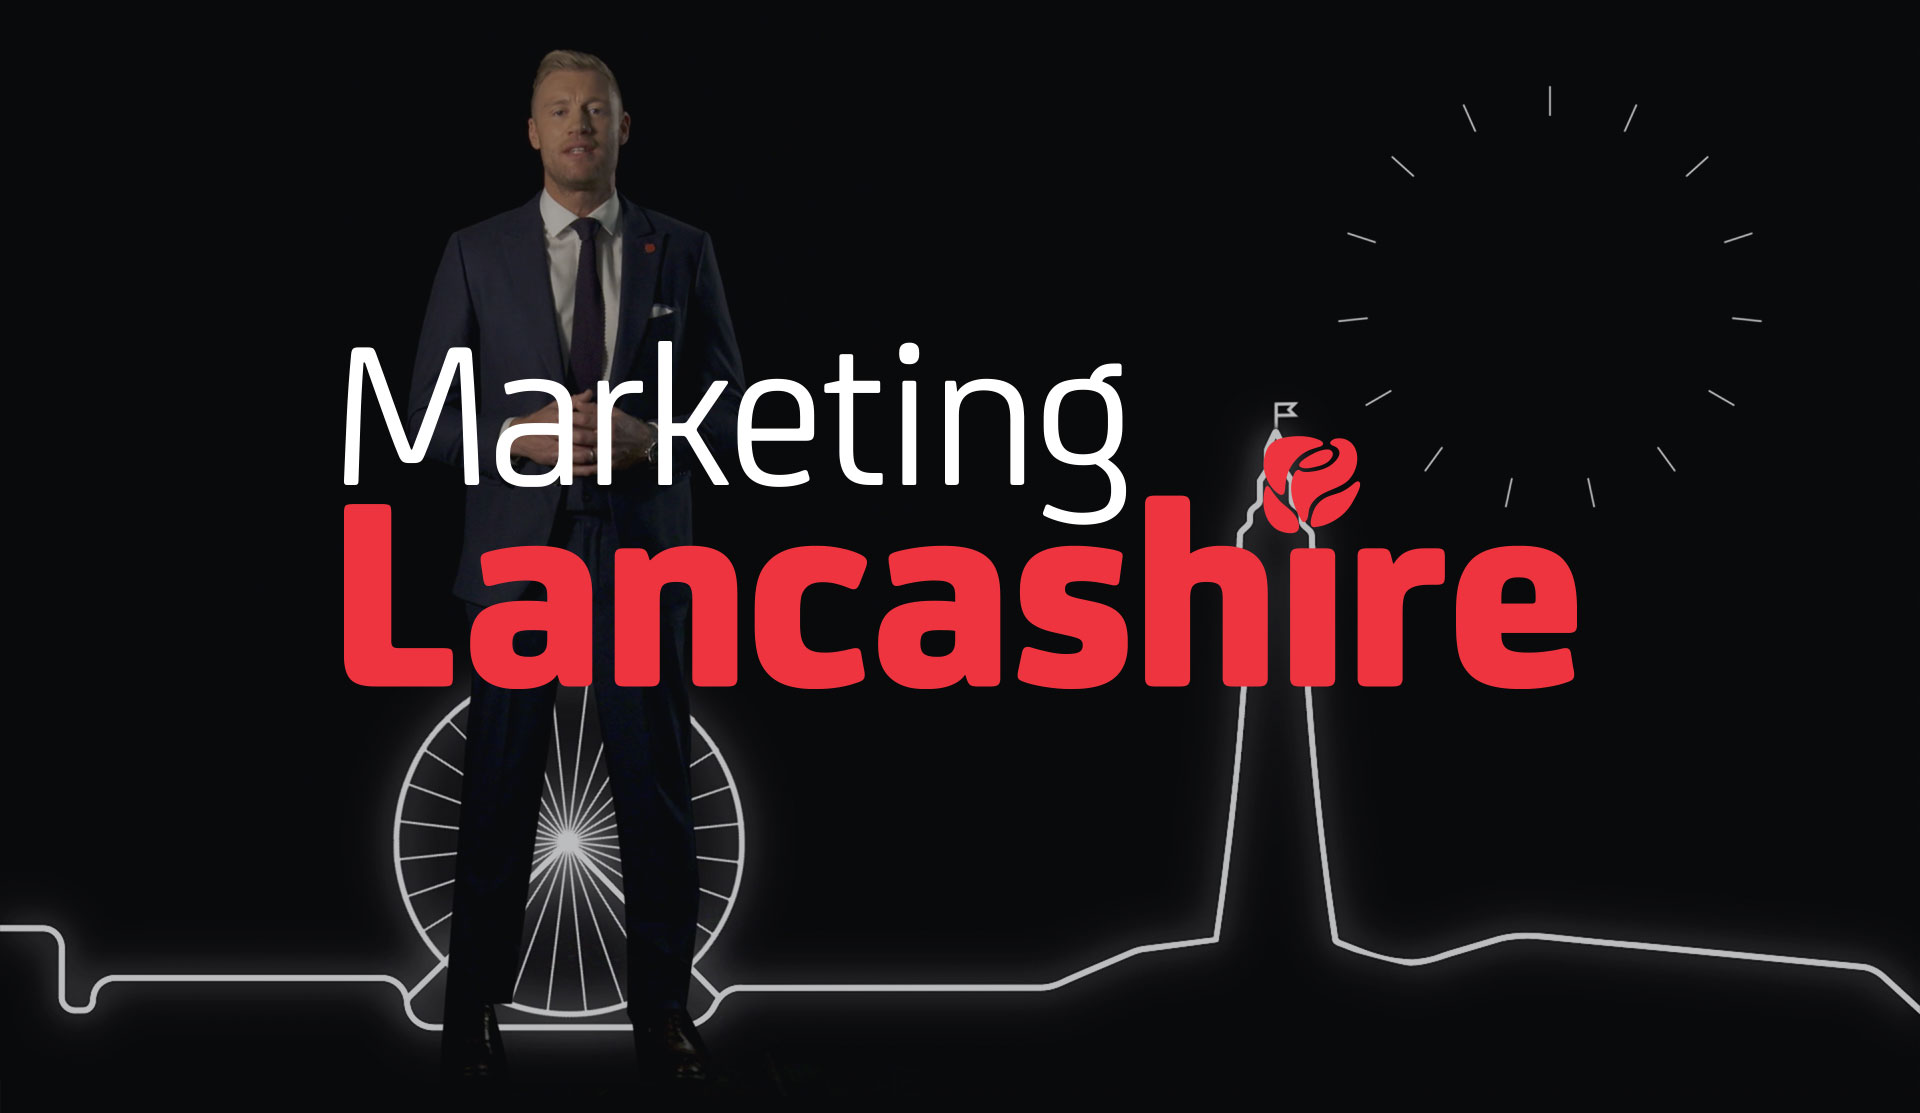 Red Pencil Productions - Video Production Manchester Marketing Lancashire